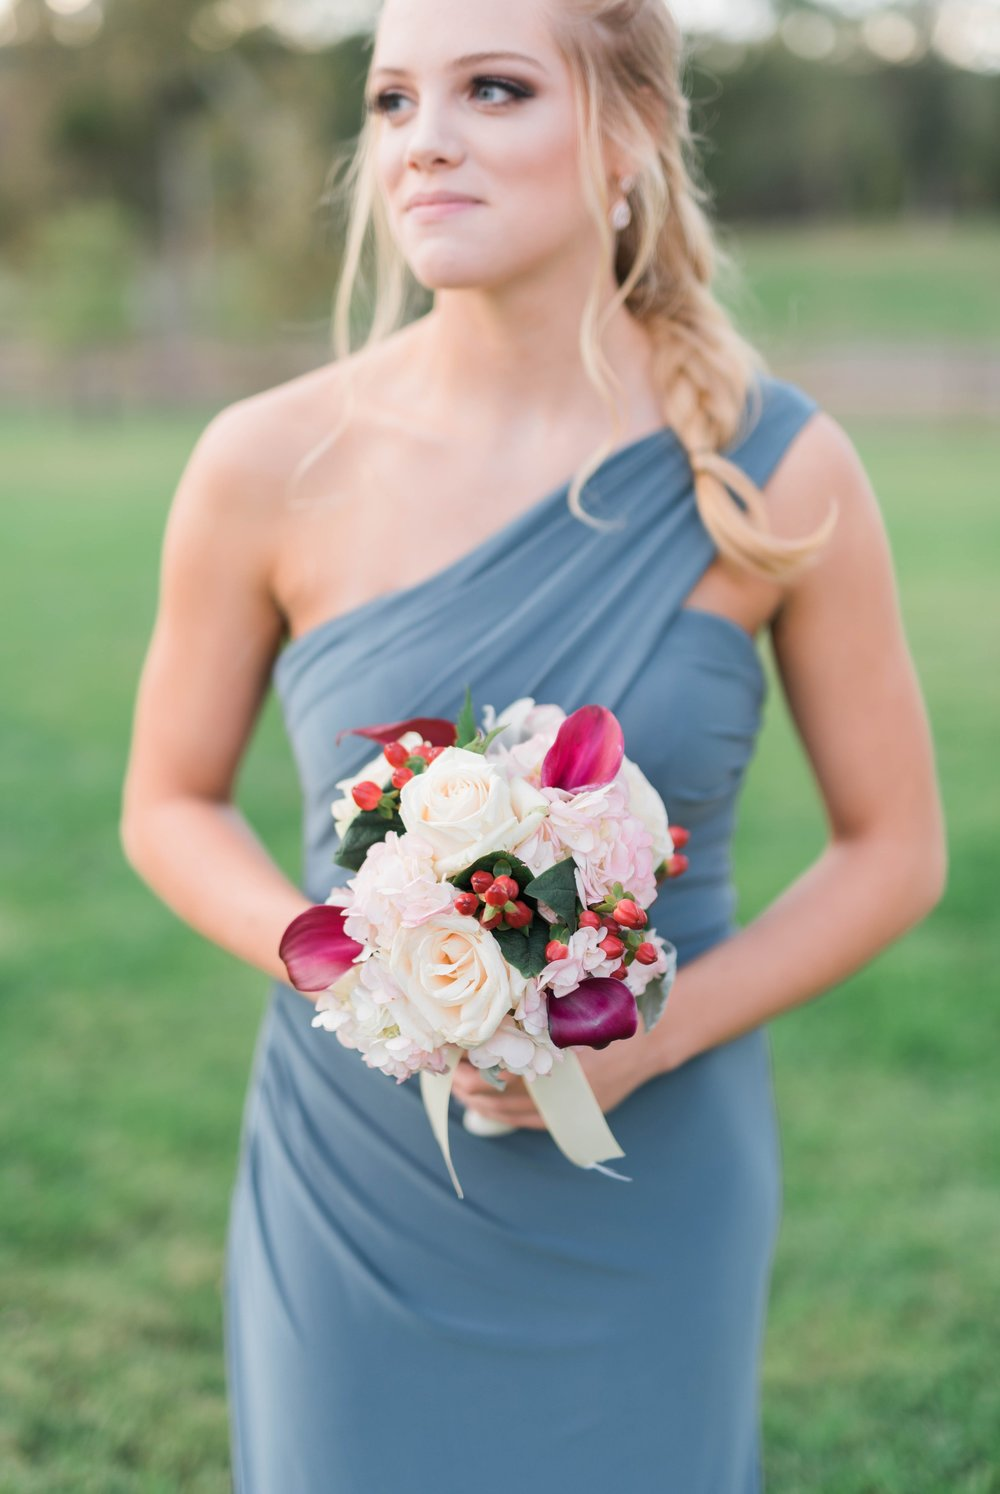 GrantElizabeth_wineryatbullrun_DCwedding_Virginiaweddingphotographer 9.jpg